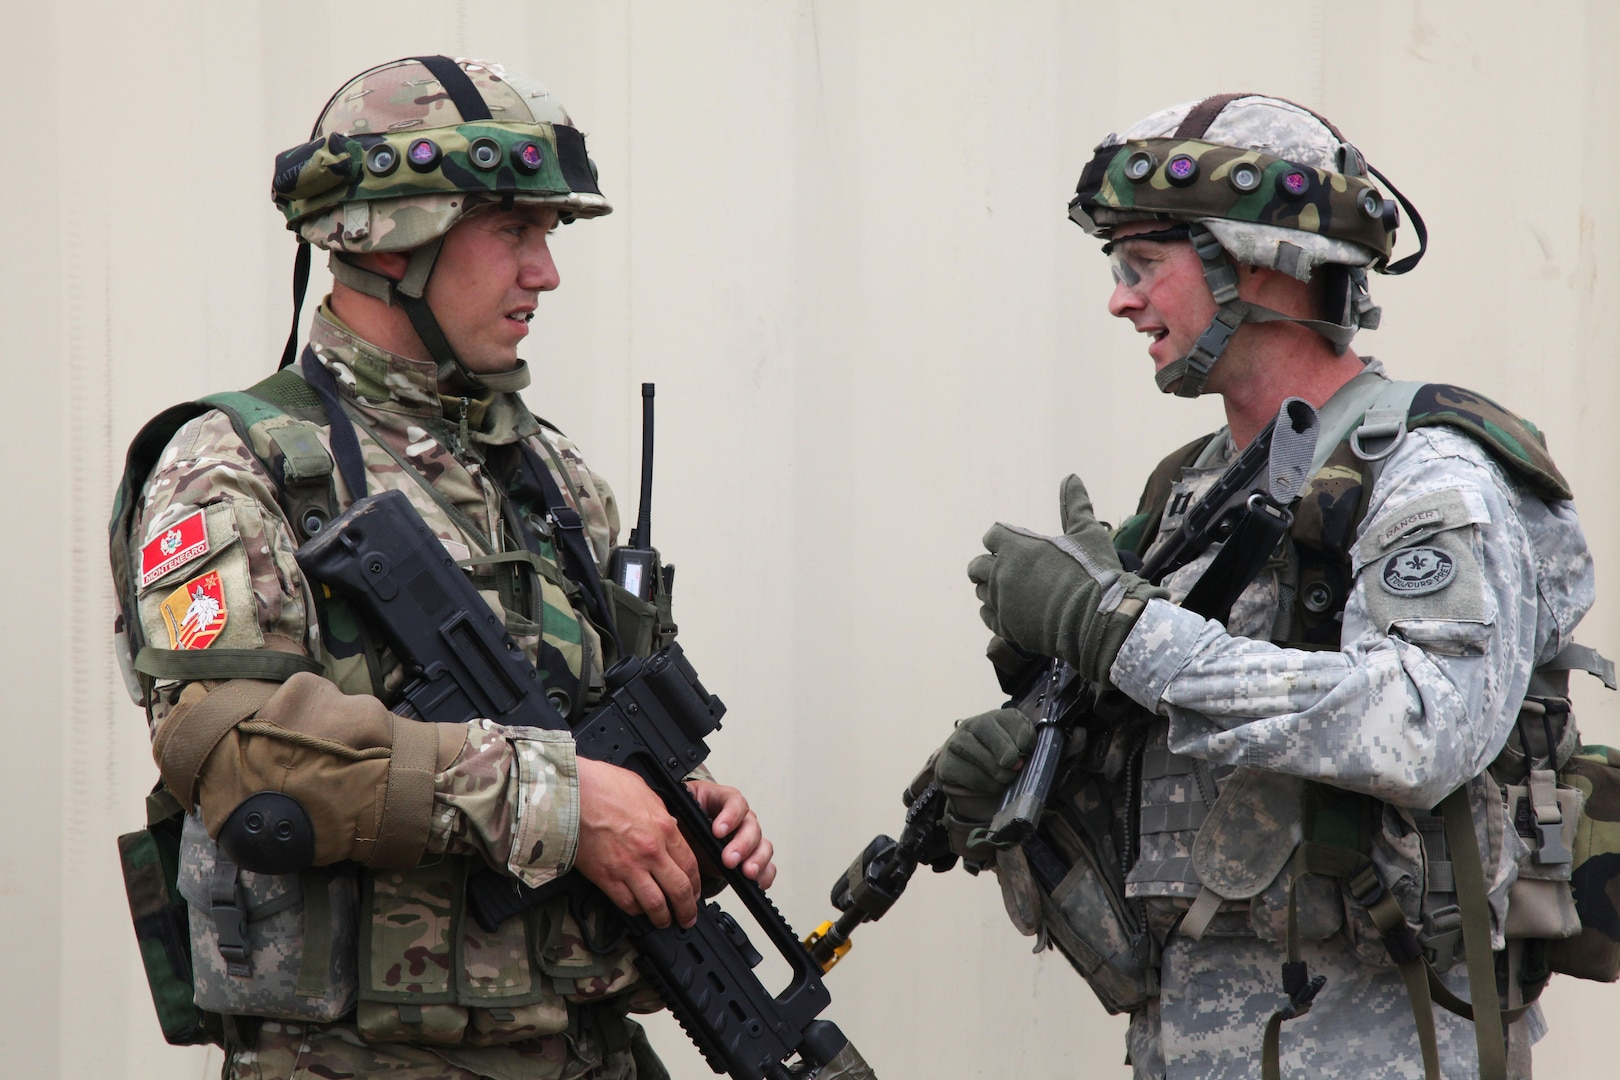 U.S. Army Capt. Geoffrey Lynch, right, the headquarters commander with the 2nd Cavalry Regiment, discusses operations and tactics with Montenegrin army Lt. Ratko Cosovic after a field training exercise during the Immediate Response 2012 training event in Slunj, Croatia, June 5, 2012. Immediate Response is a U.S. Army Europe-led combined joint tactical field training exercise designed to build interoperability between NATO, Croatia and its regional partner nations. (DoD photo by Spc. Lorenzo Ware, U.S. Army/Released)